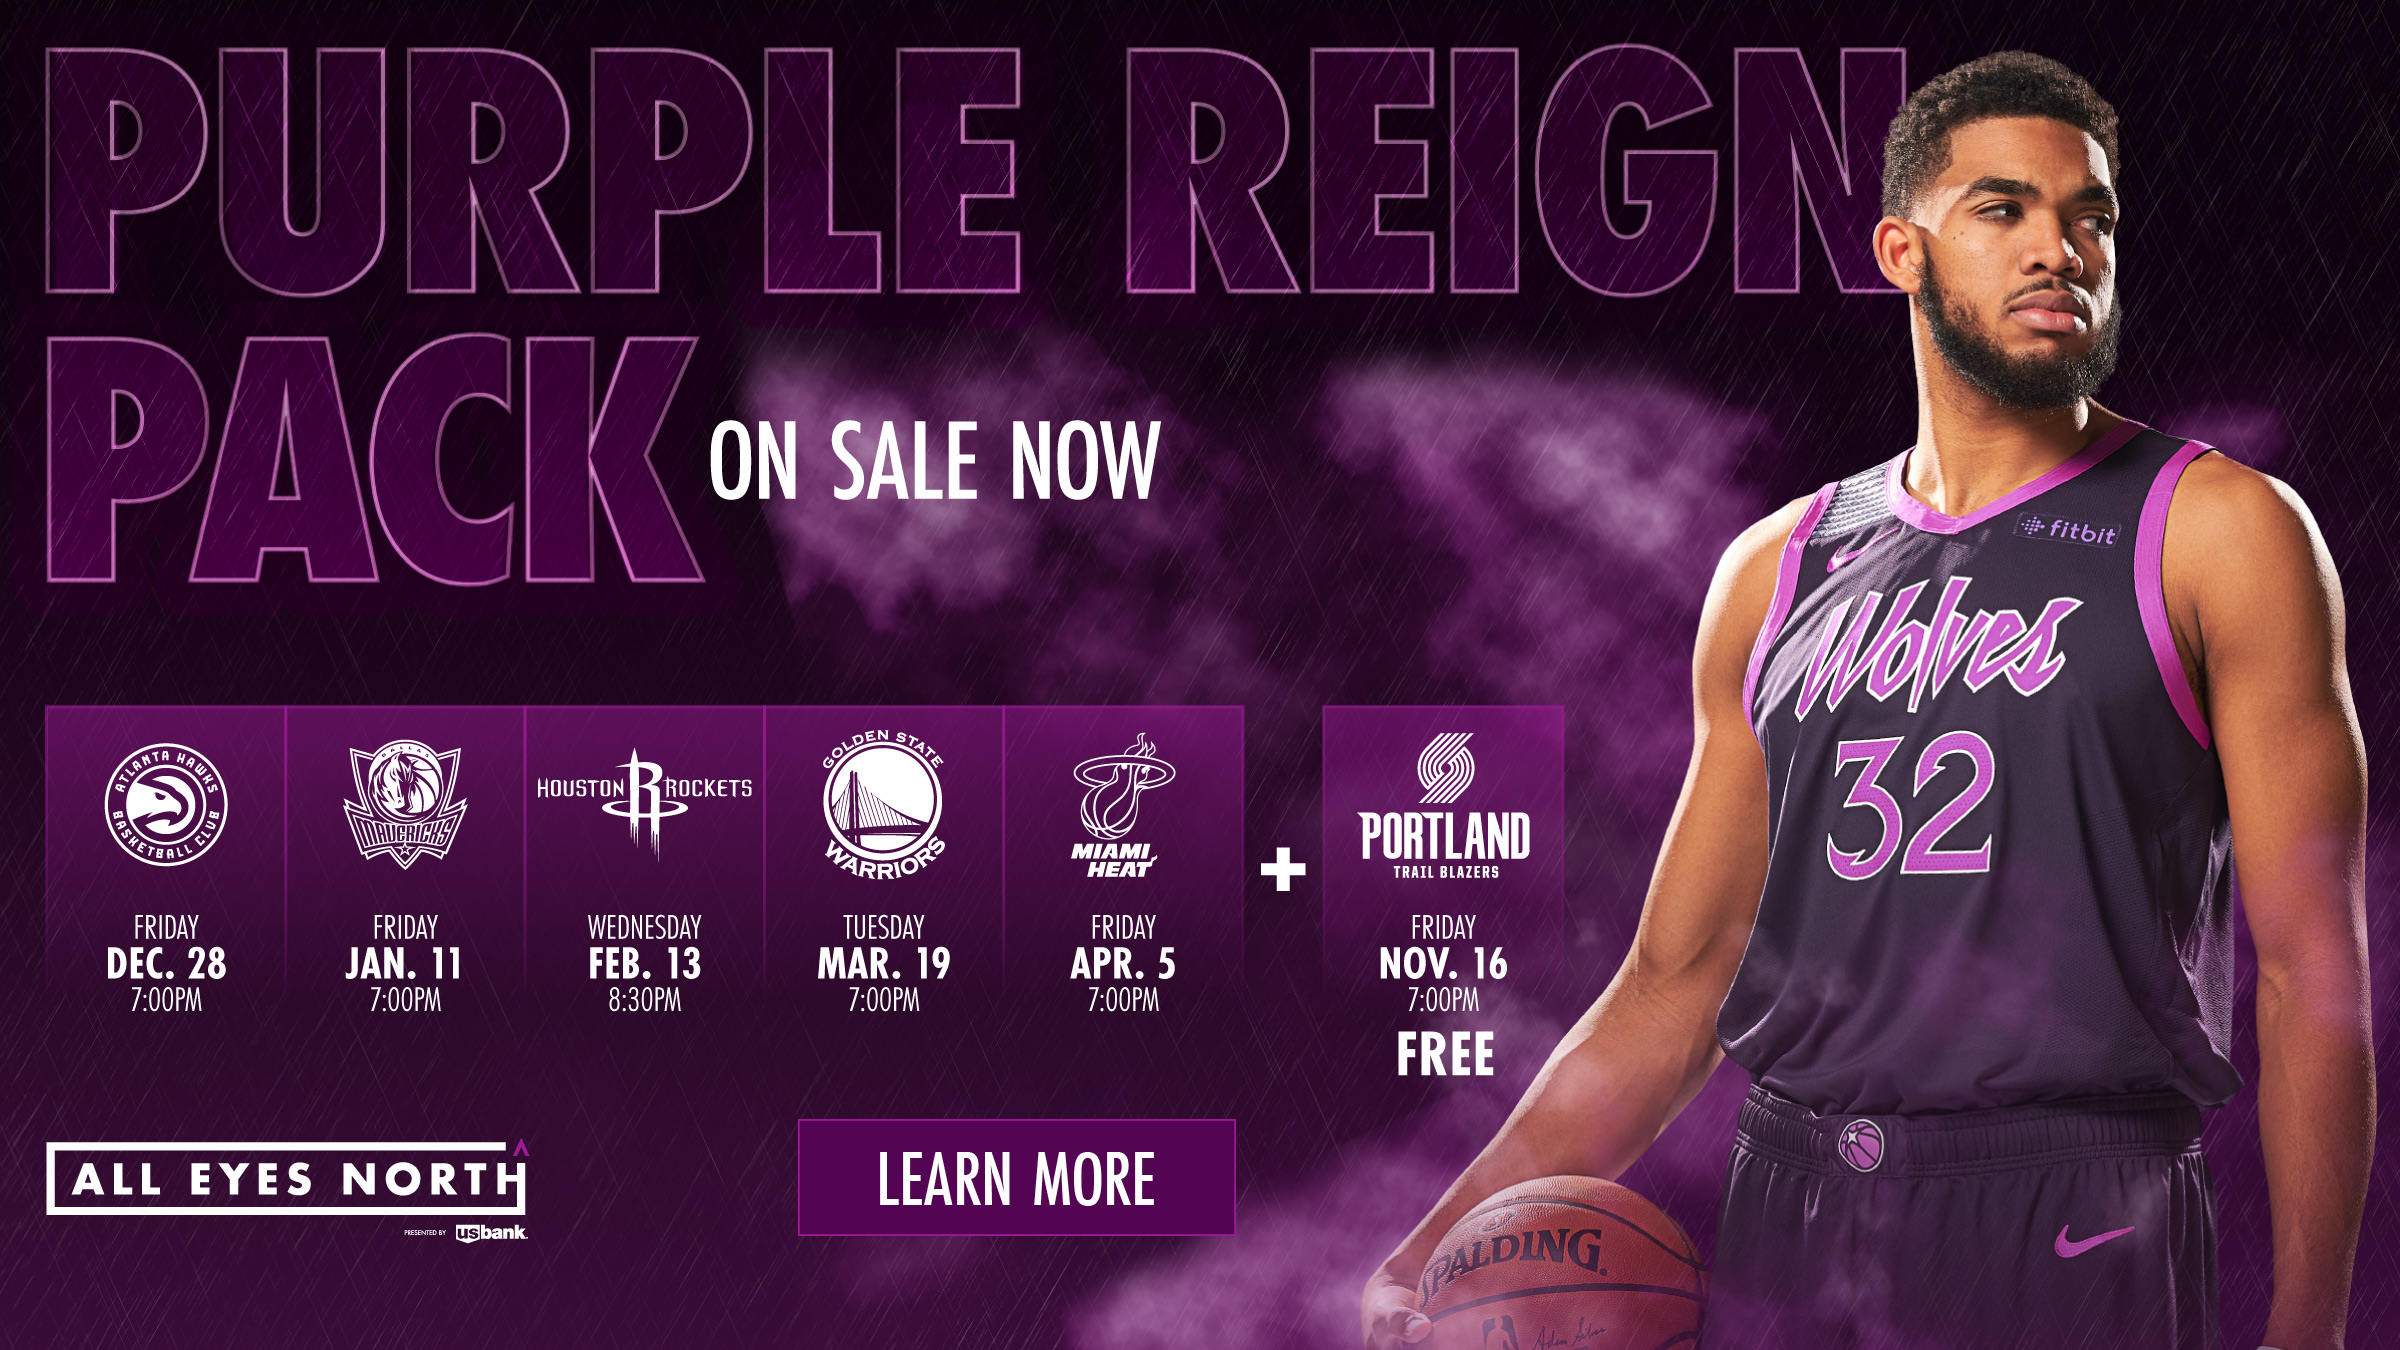 Timberwolves Purple Reign Pack